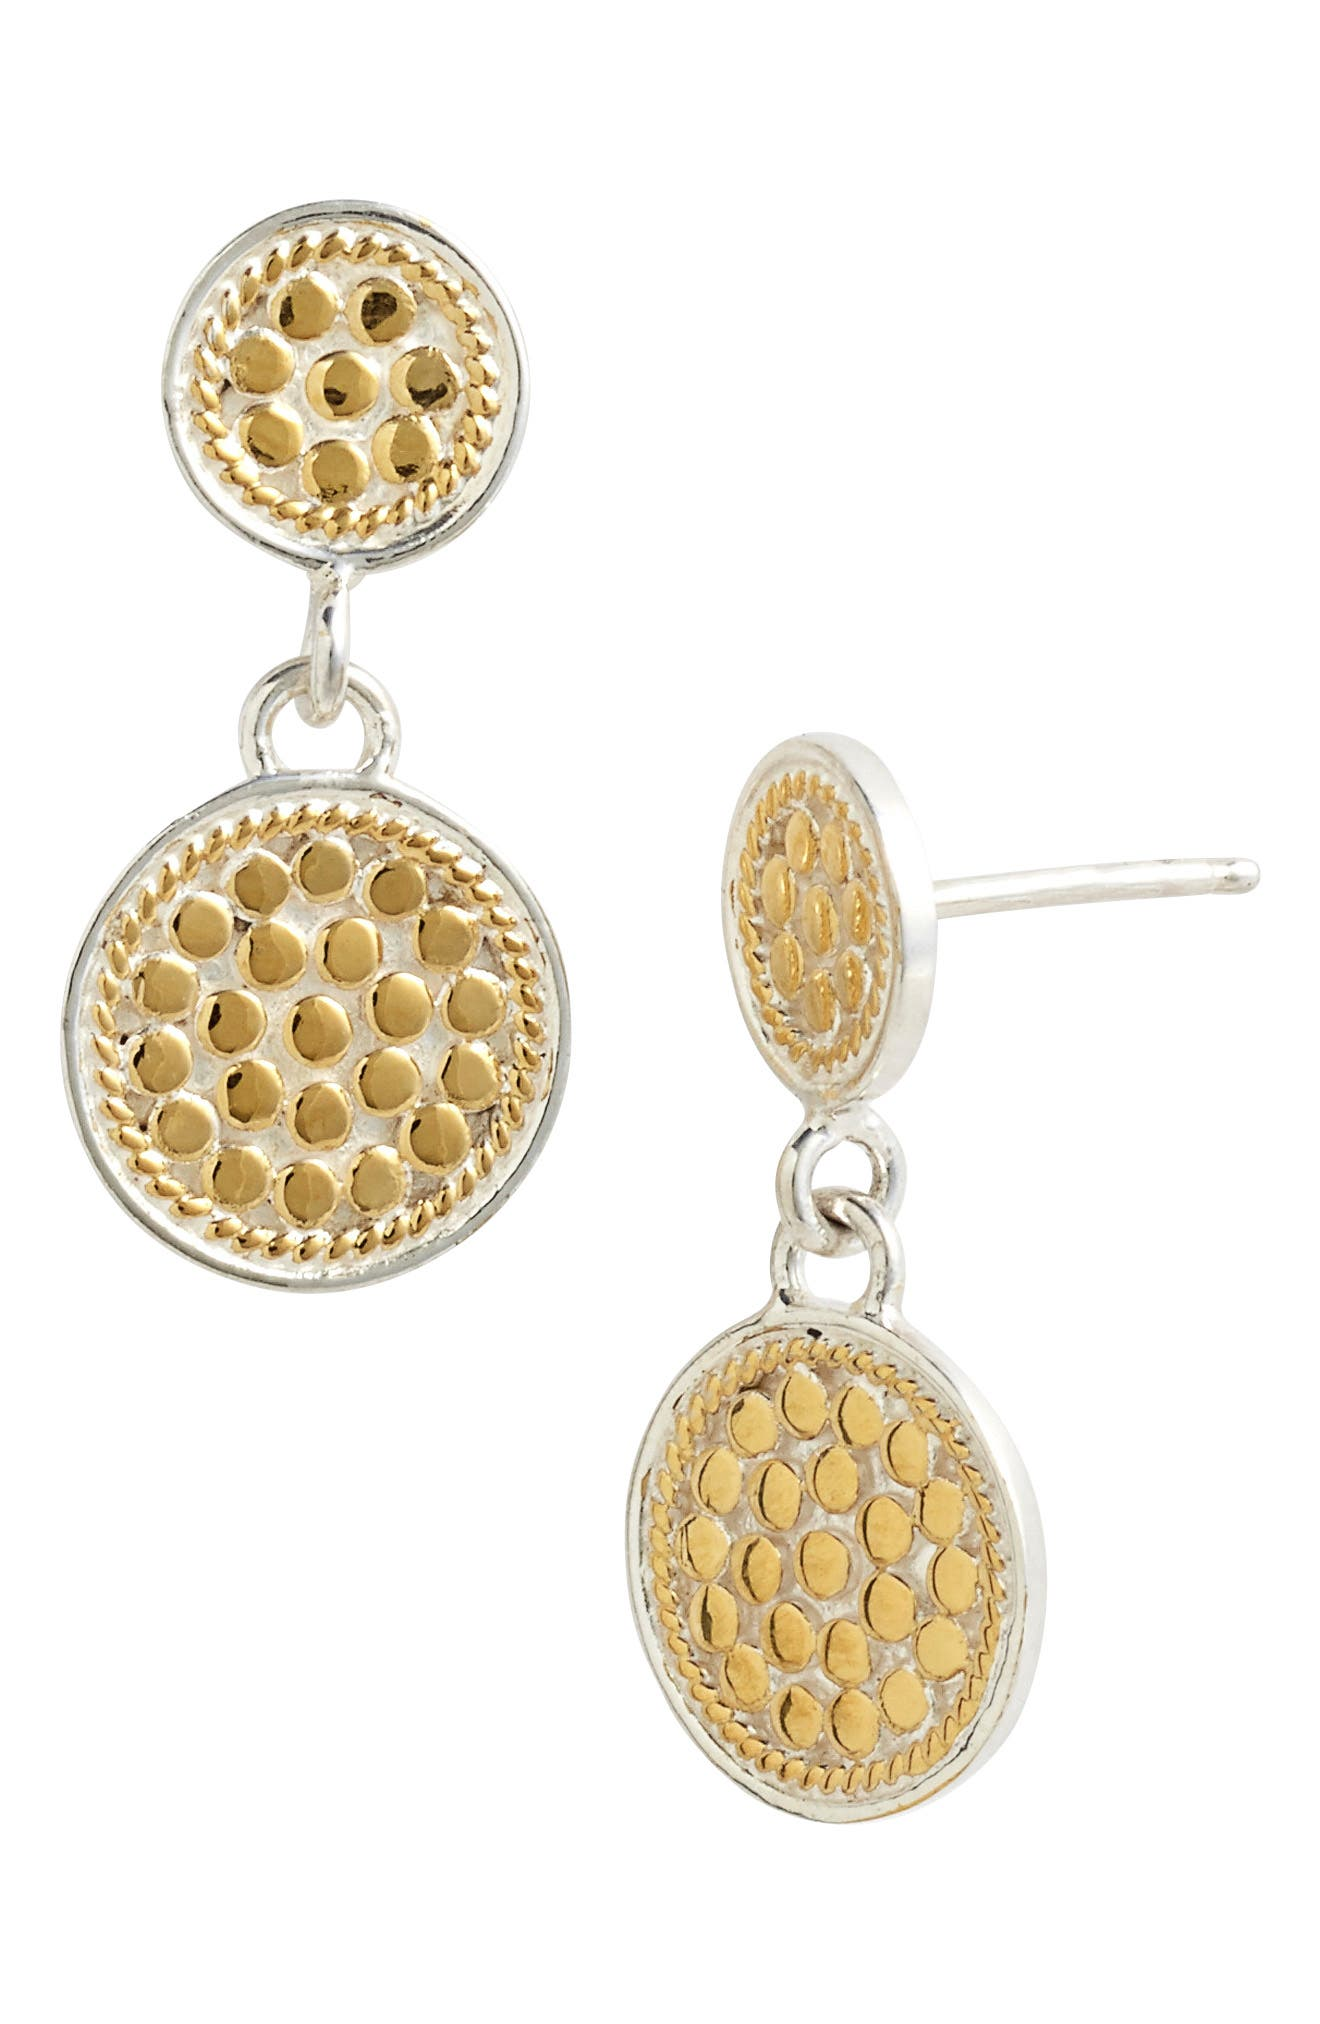 Gili Double Disc Earrings,                         Main,                         color, Gold